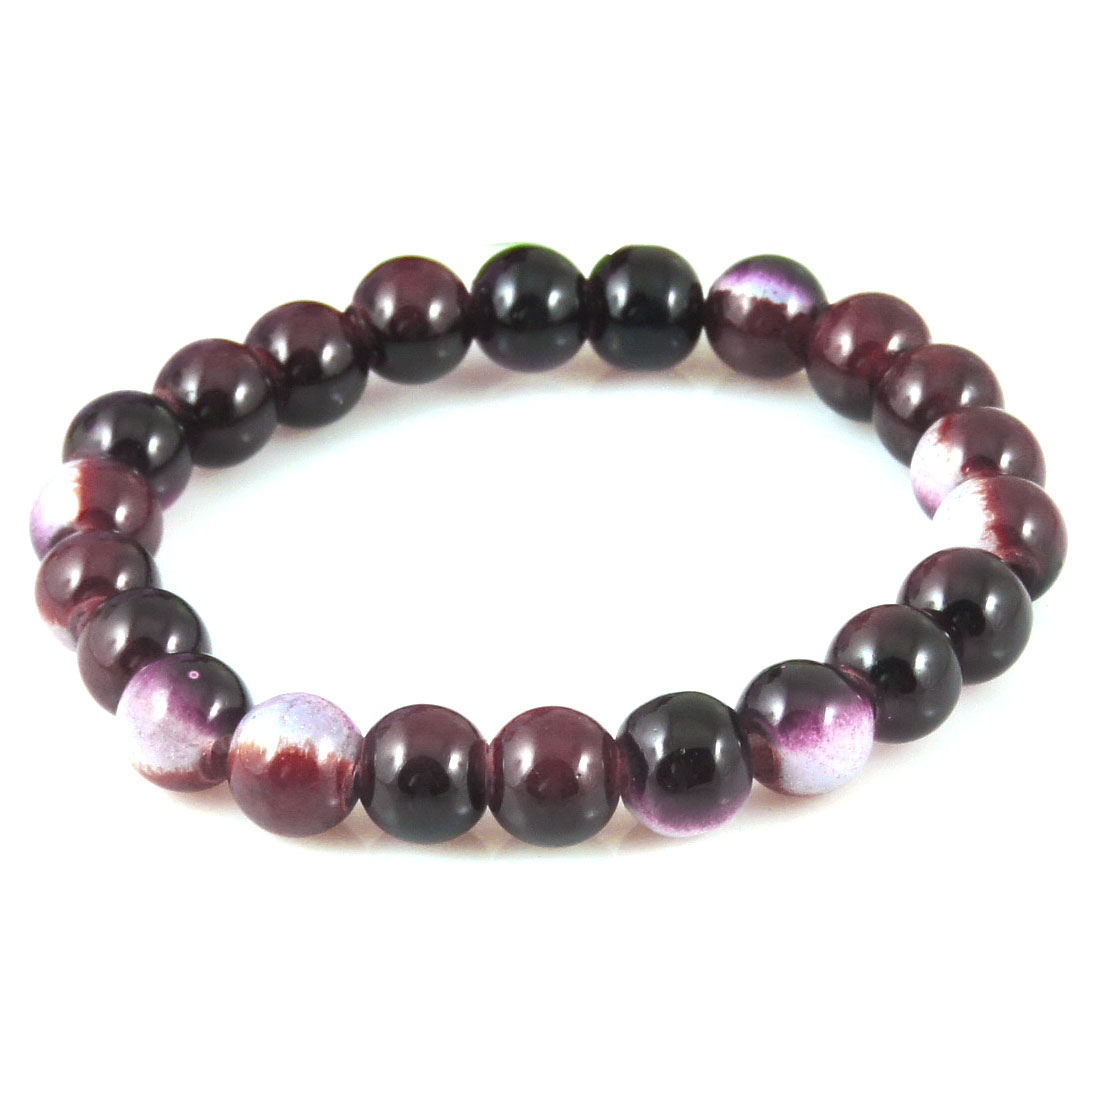 Lady Women Wrist Decor Purple Black Round Beads Elastic Bracelet